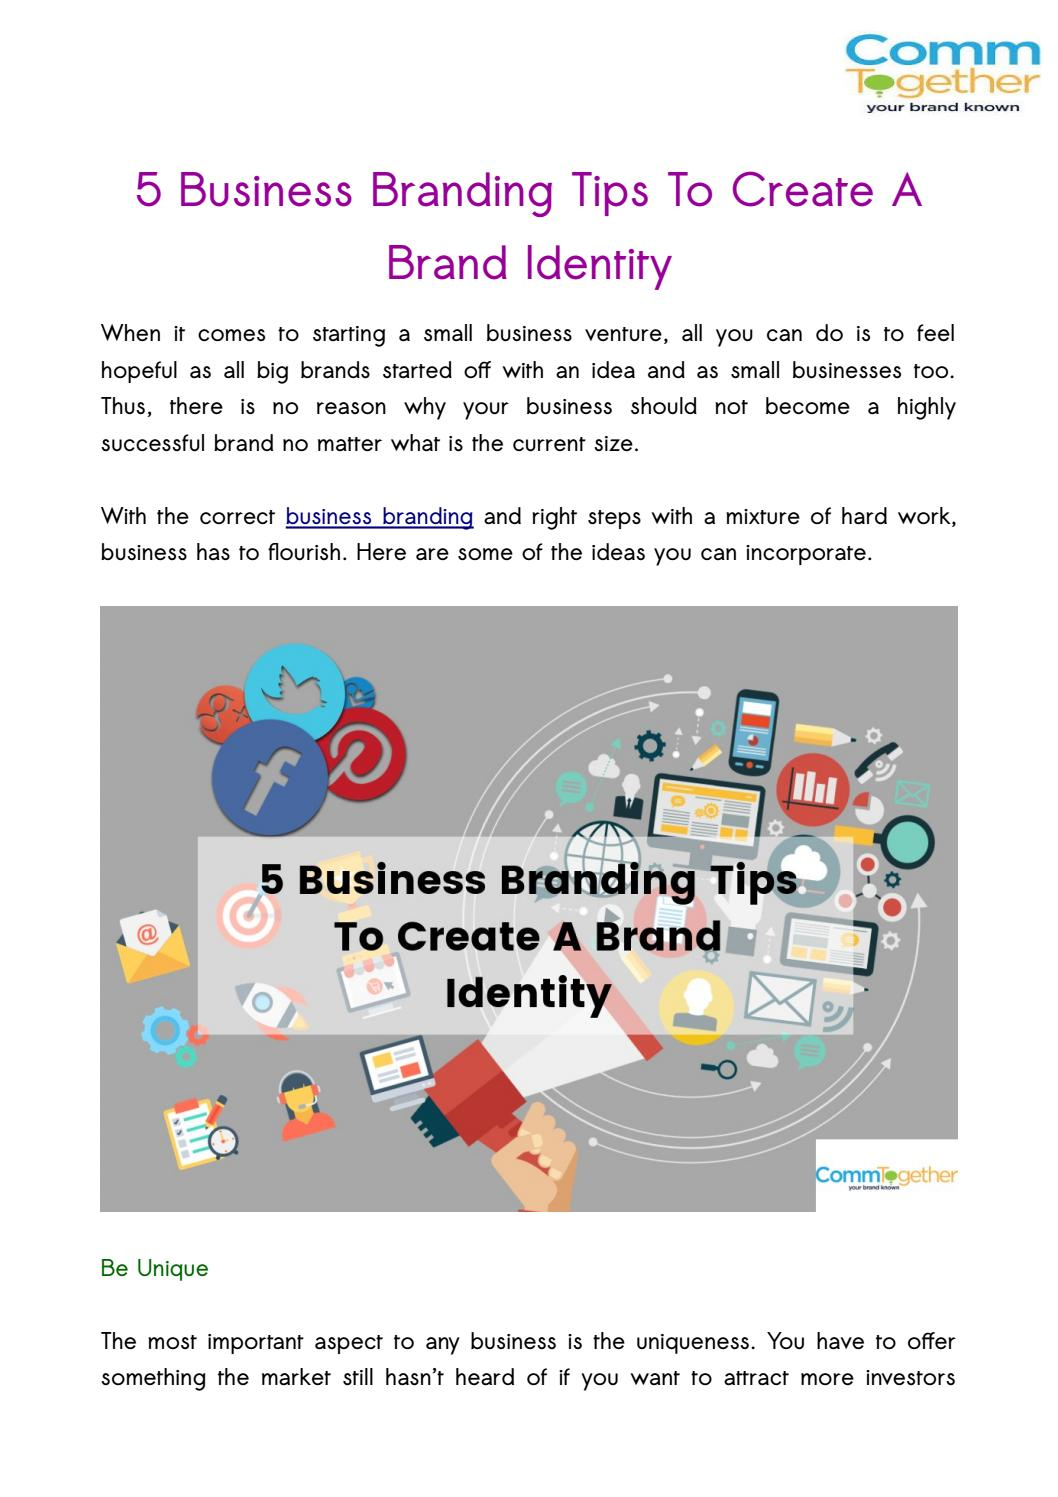 5 Business Branding Tips To Create A Brand Identity by